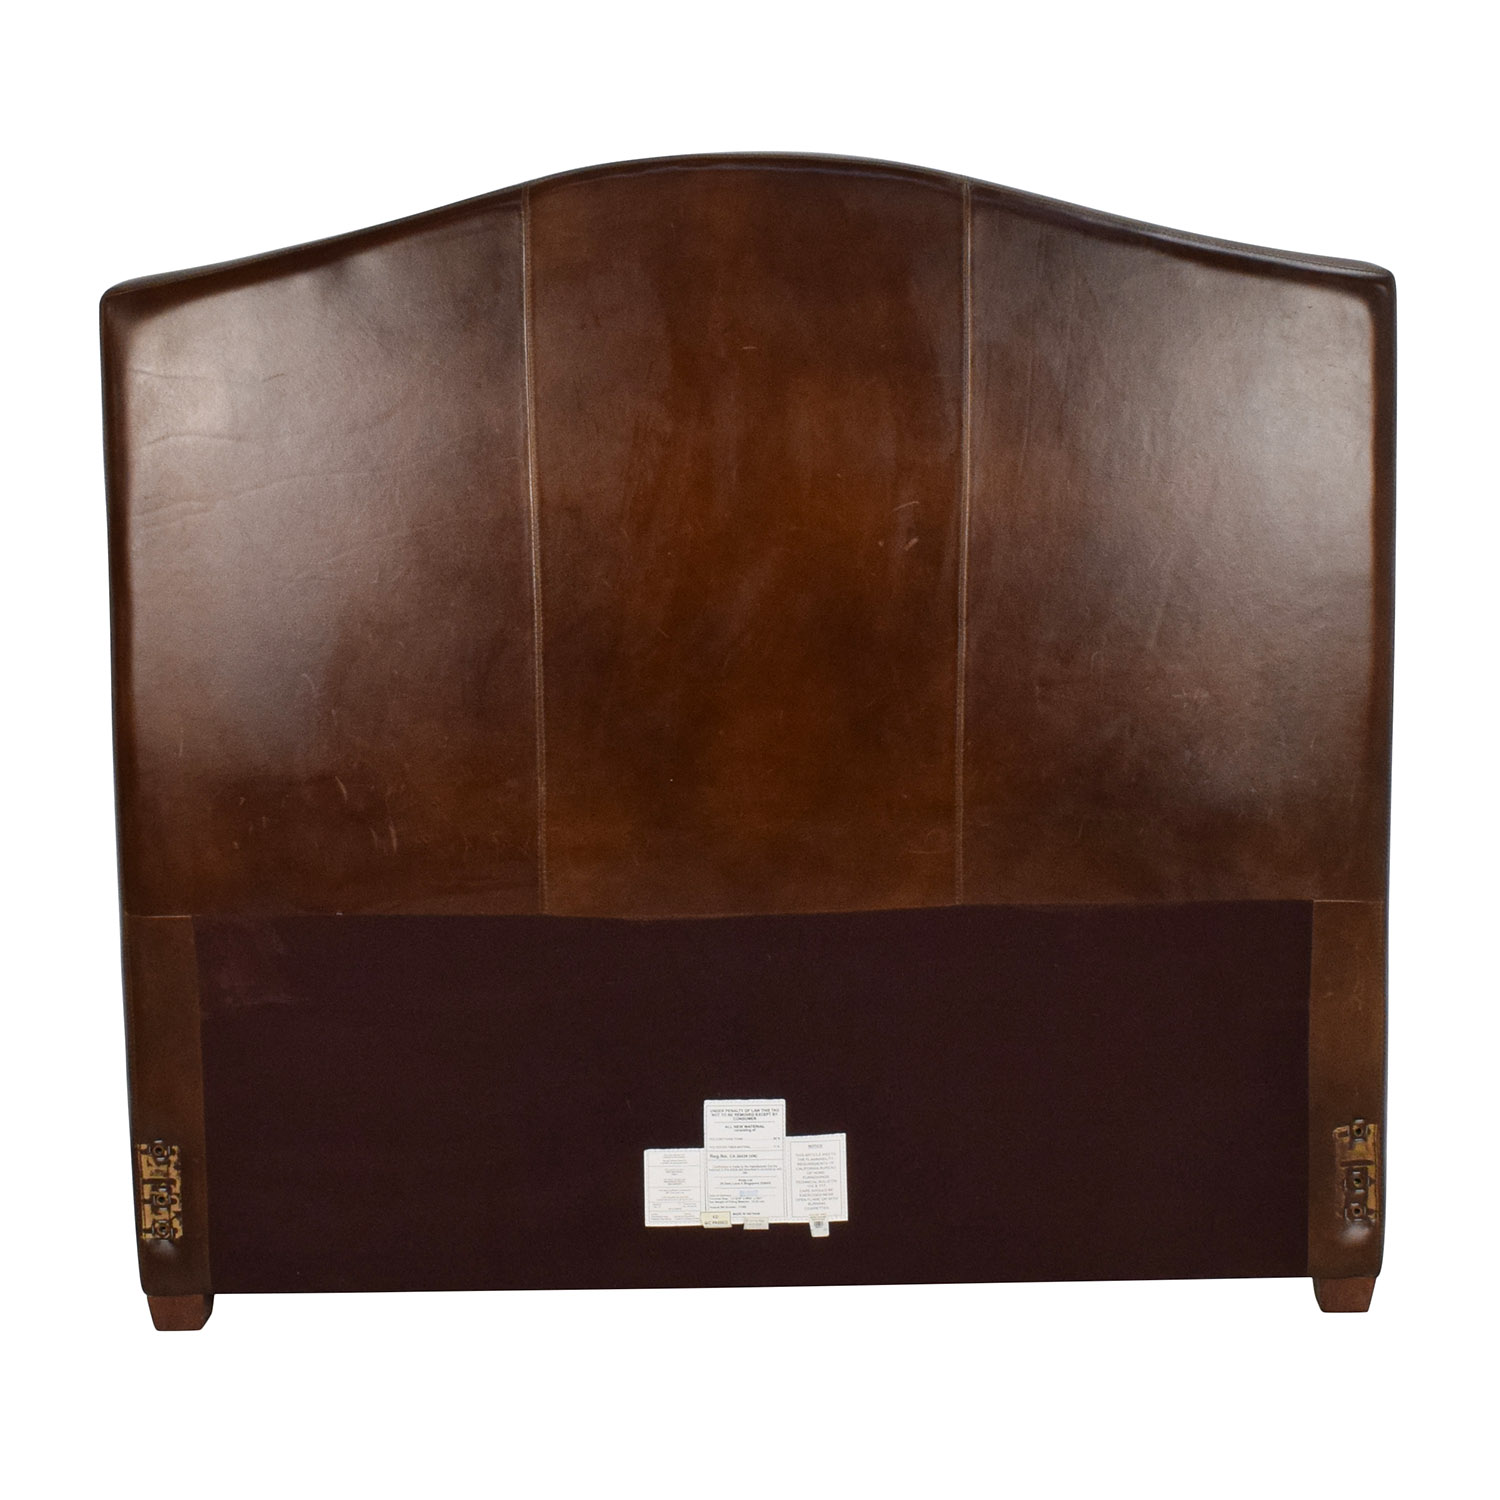 shop Alex Alin Alex Alin Designs Alexander Queen Leather Headboard online